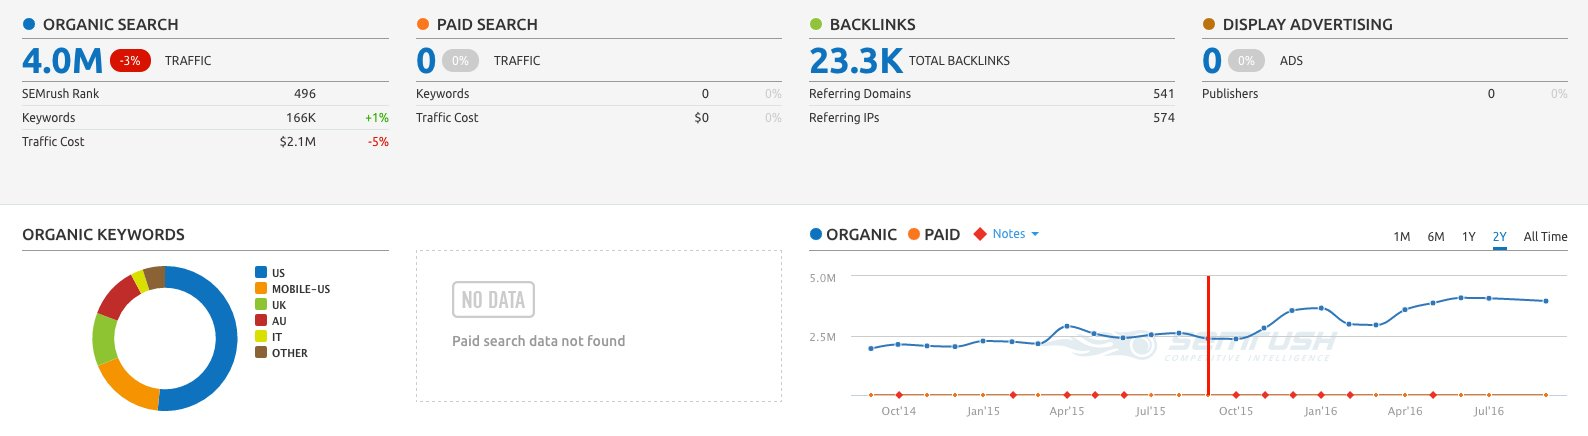 organic traffic effecting ad earnings